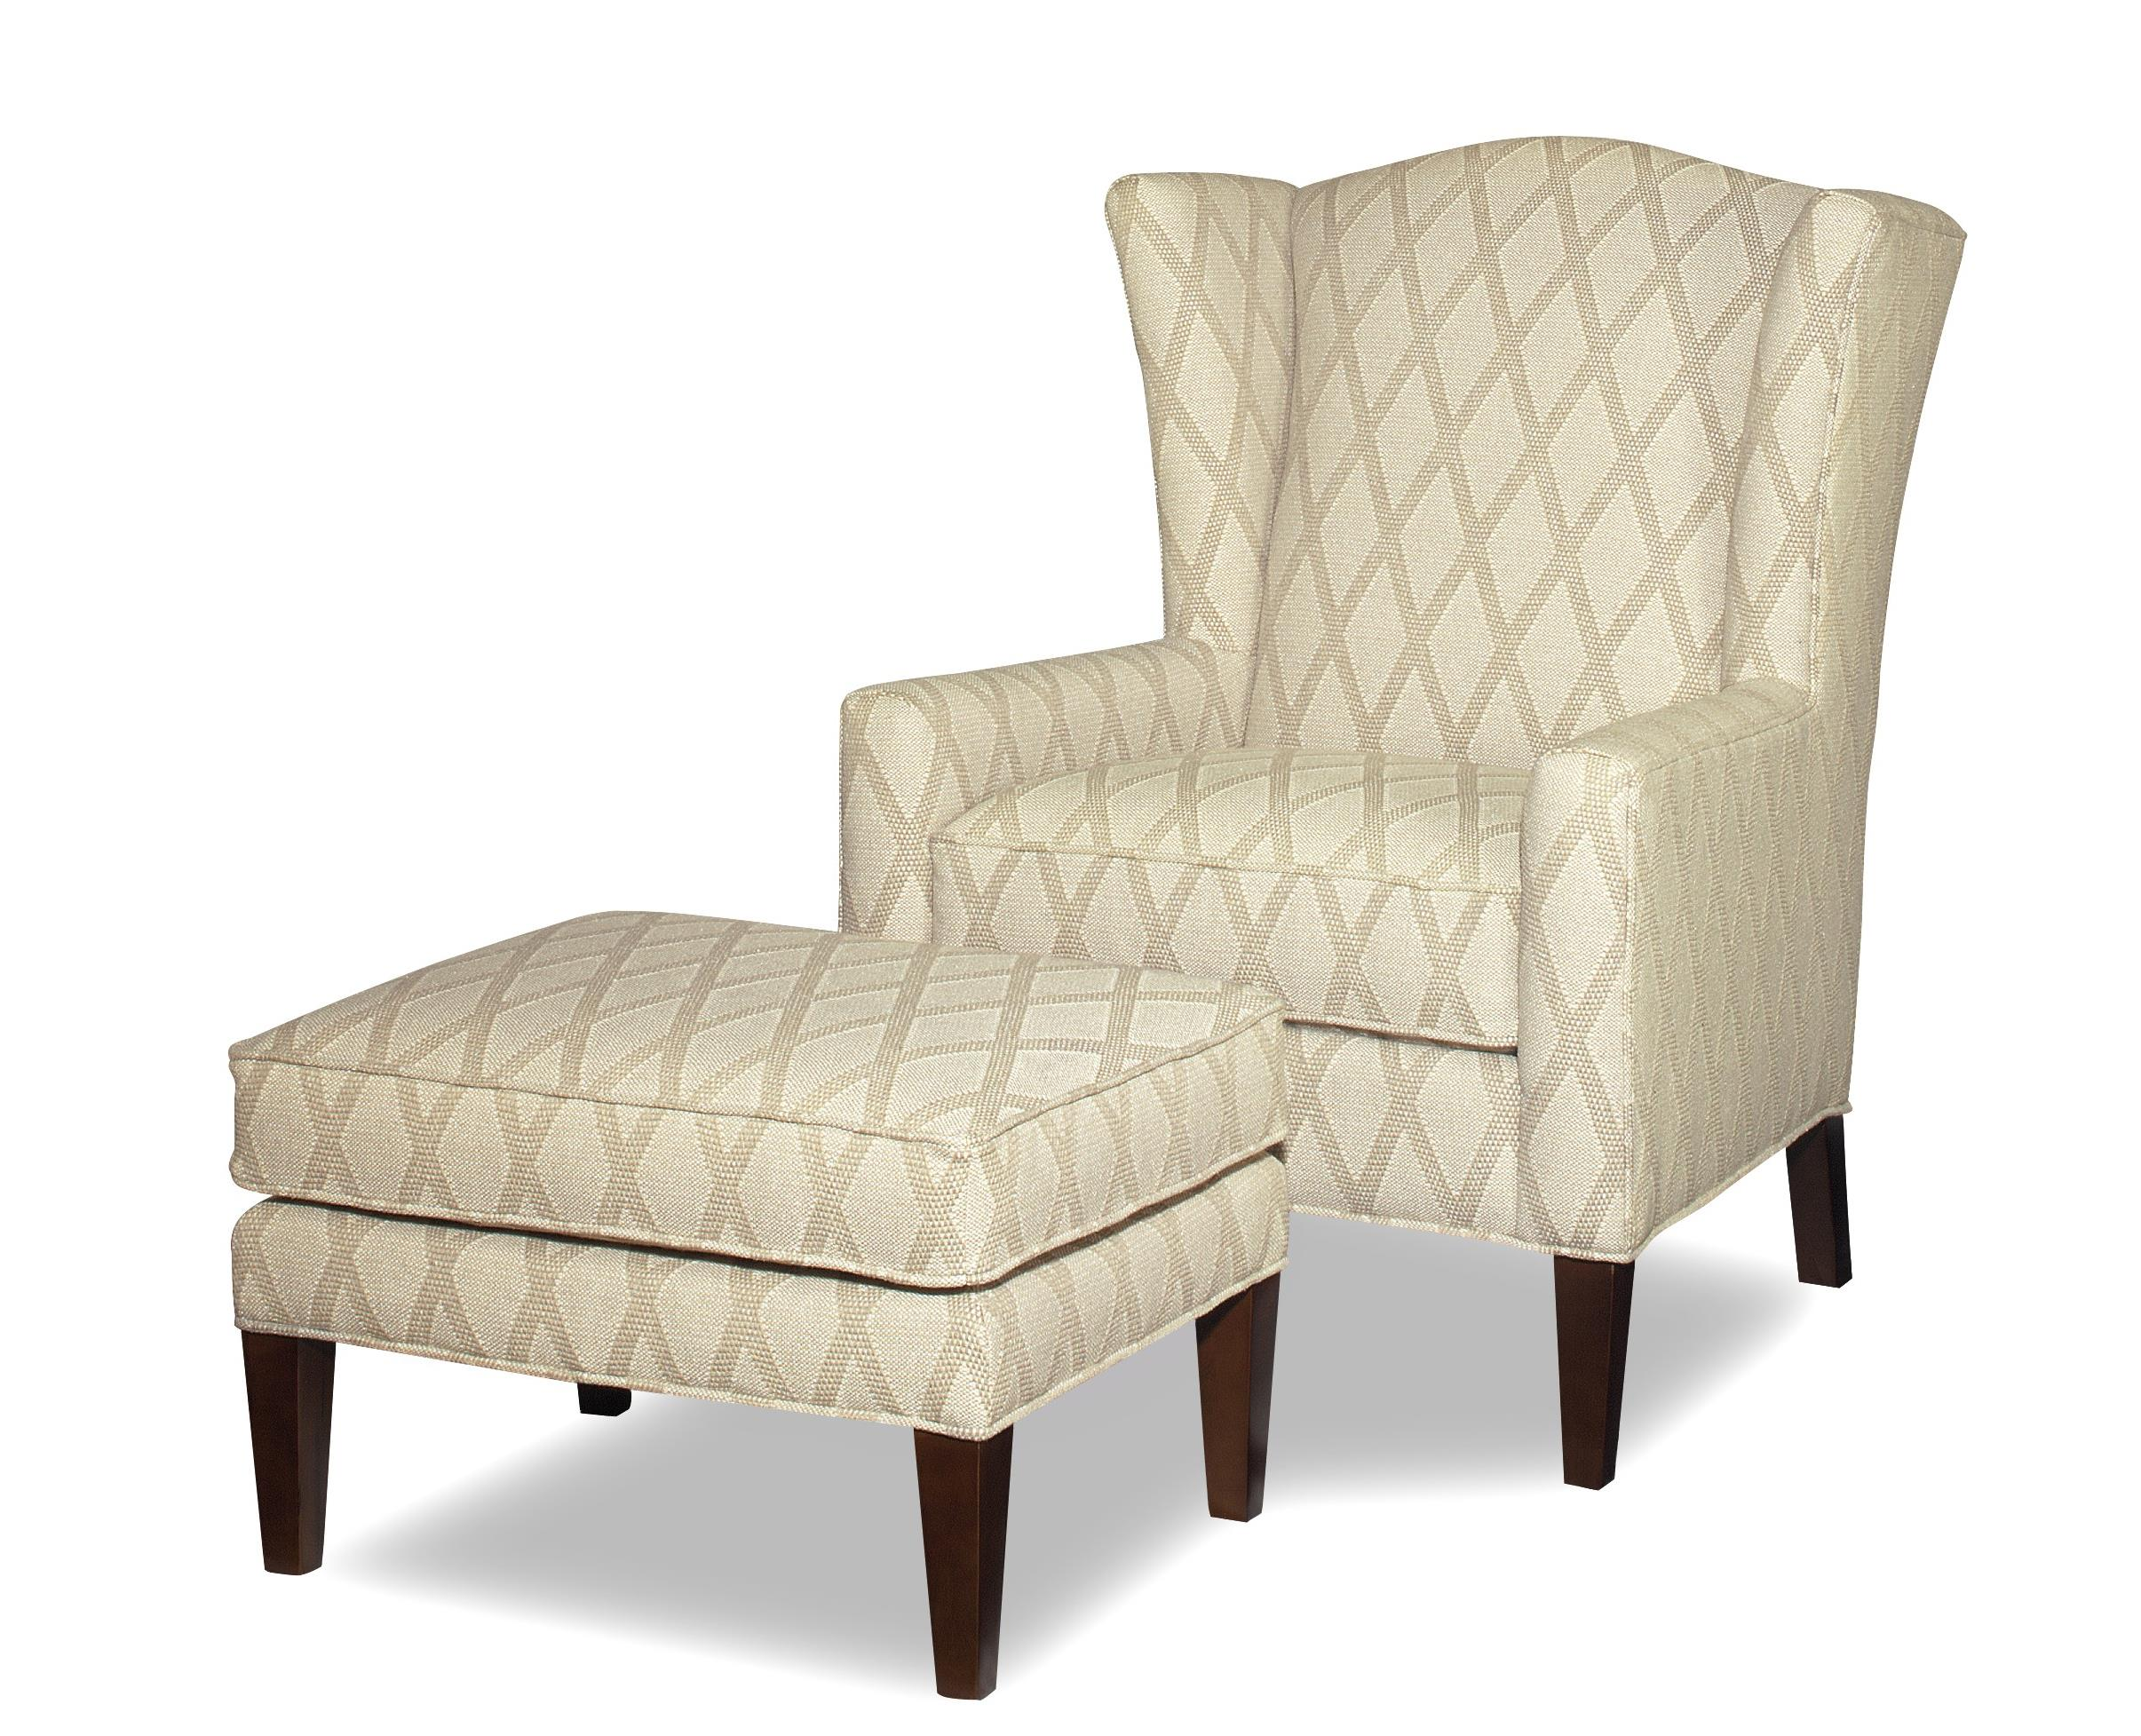 Charmant Wing Chair And Ottoman With Wide Flared Wings